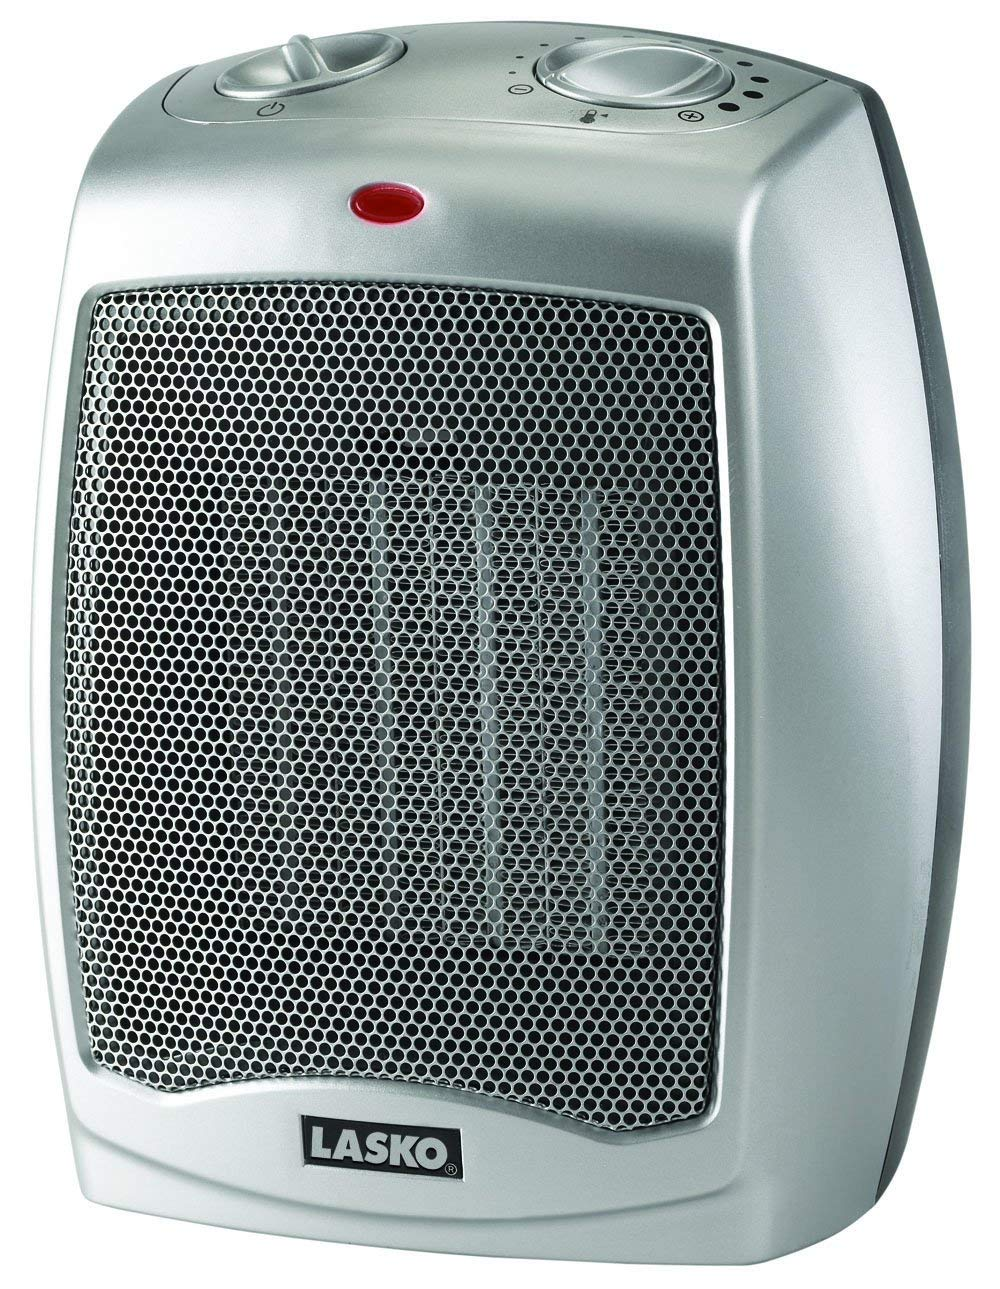 Lasko 754200 best space heater